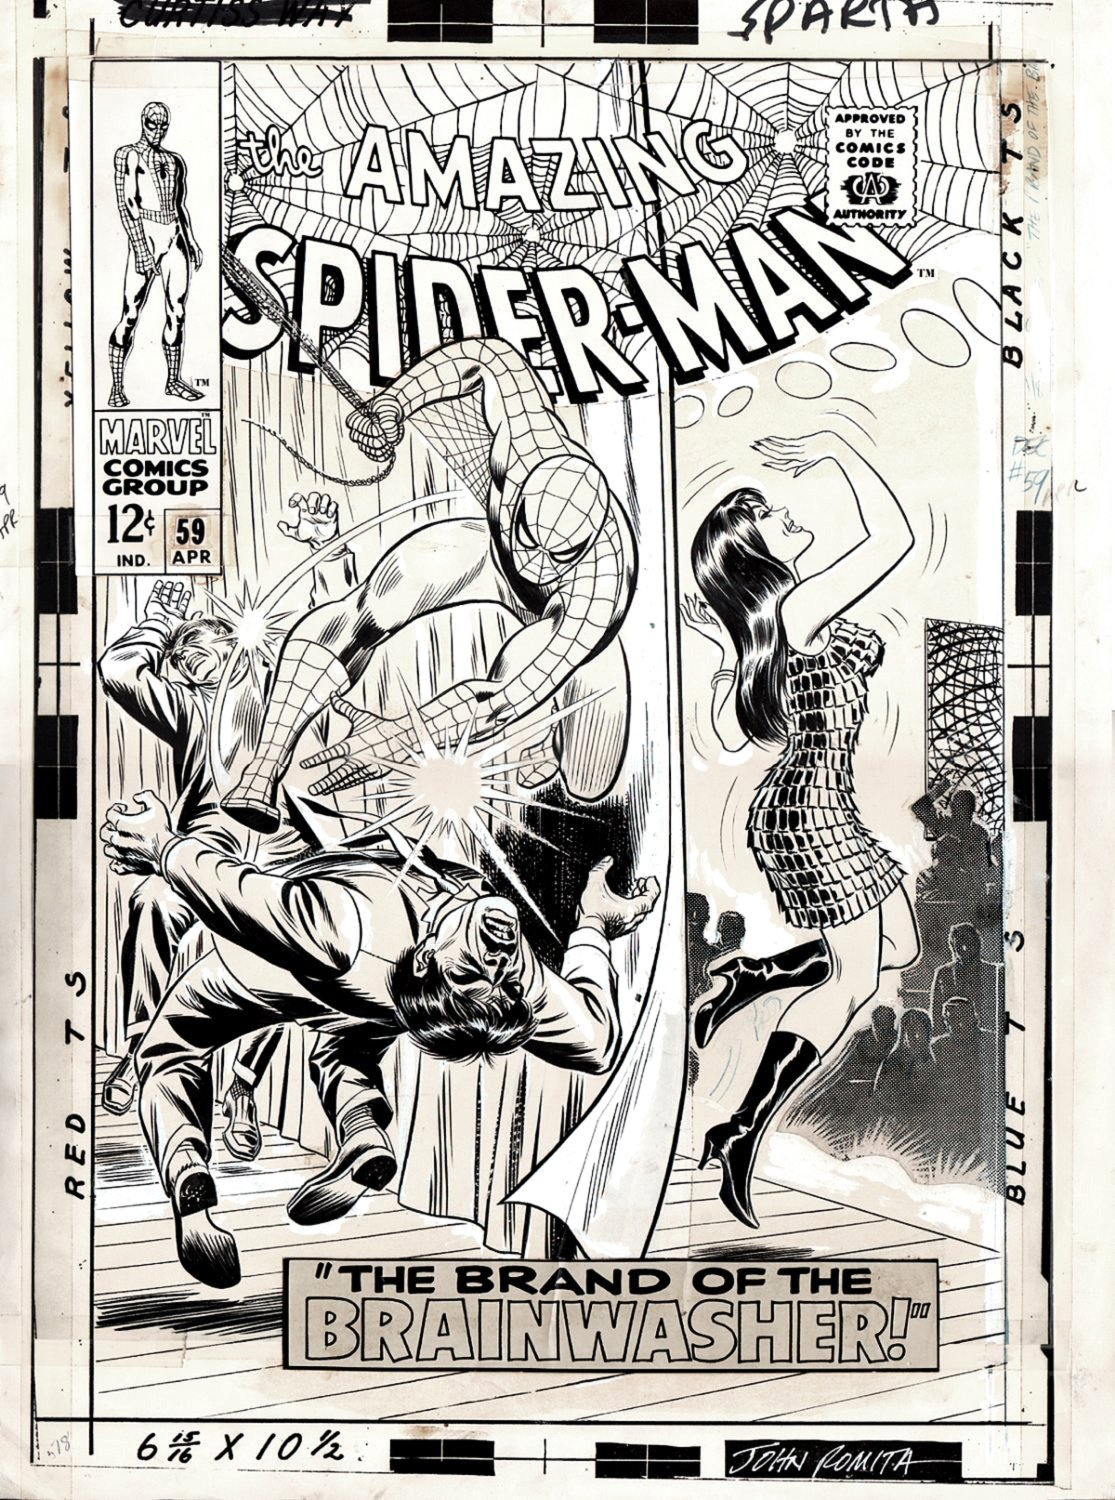 Amazing Spider-Man #59 Cover (LARGE ART!) 1967 SOLD SOLD SOLD!